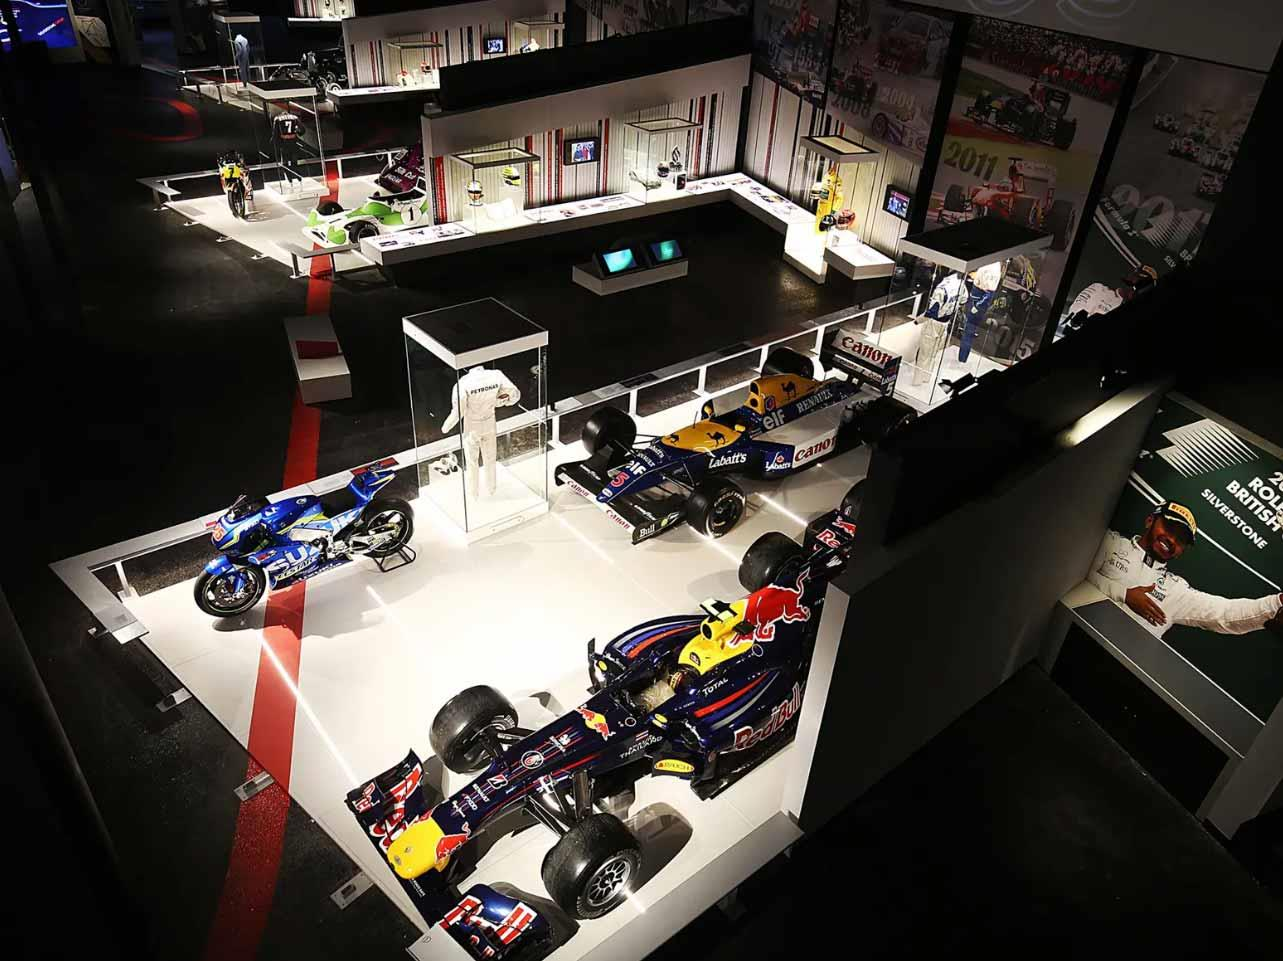 MotoGP bikes sit alongside Formula 1 cars